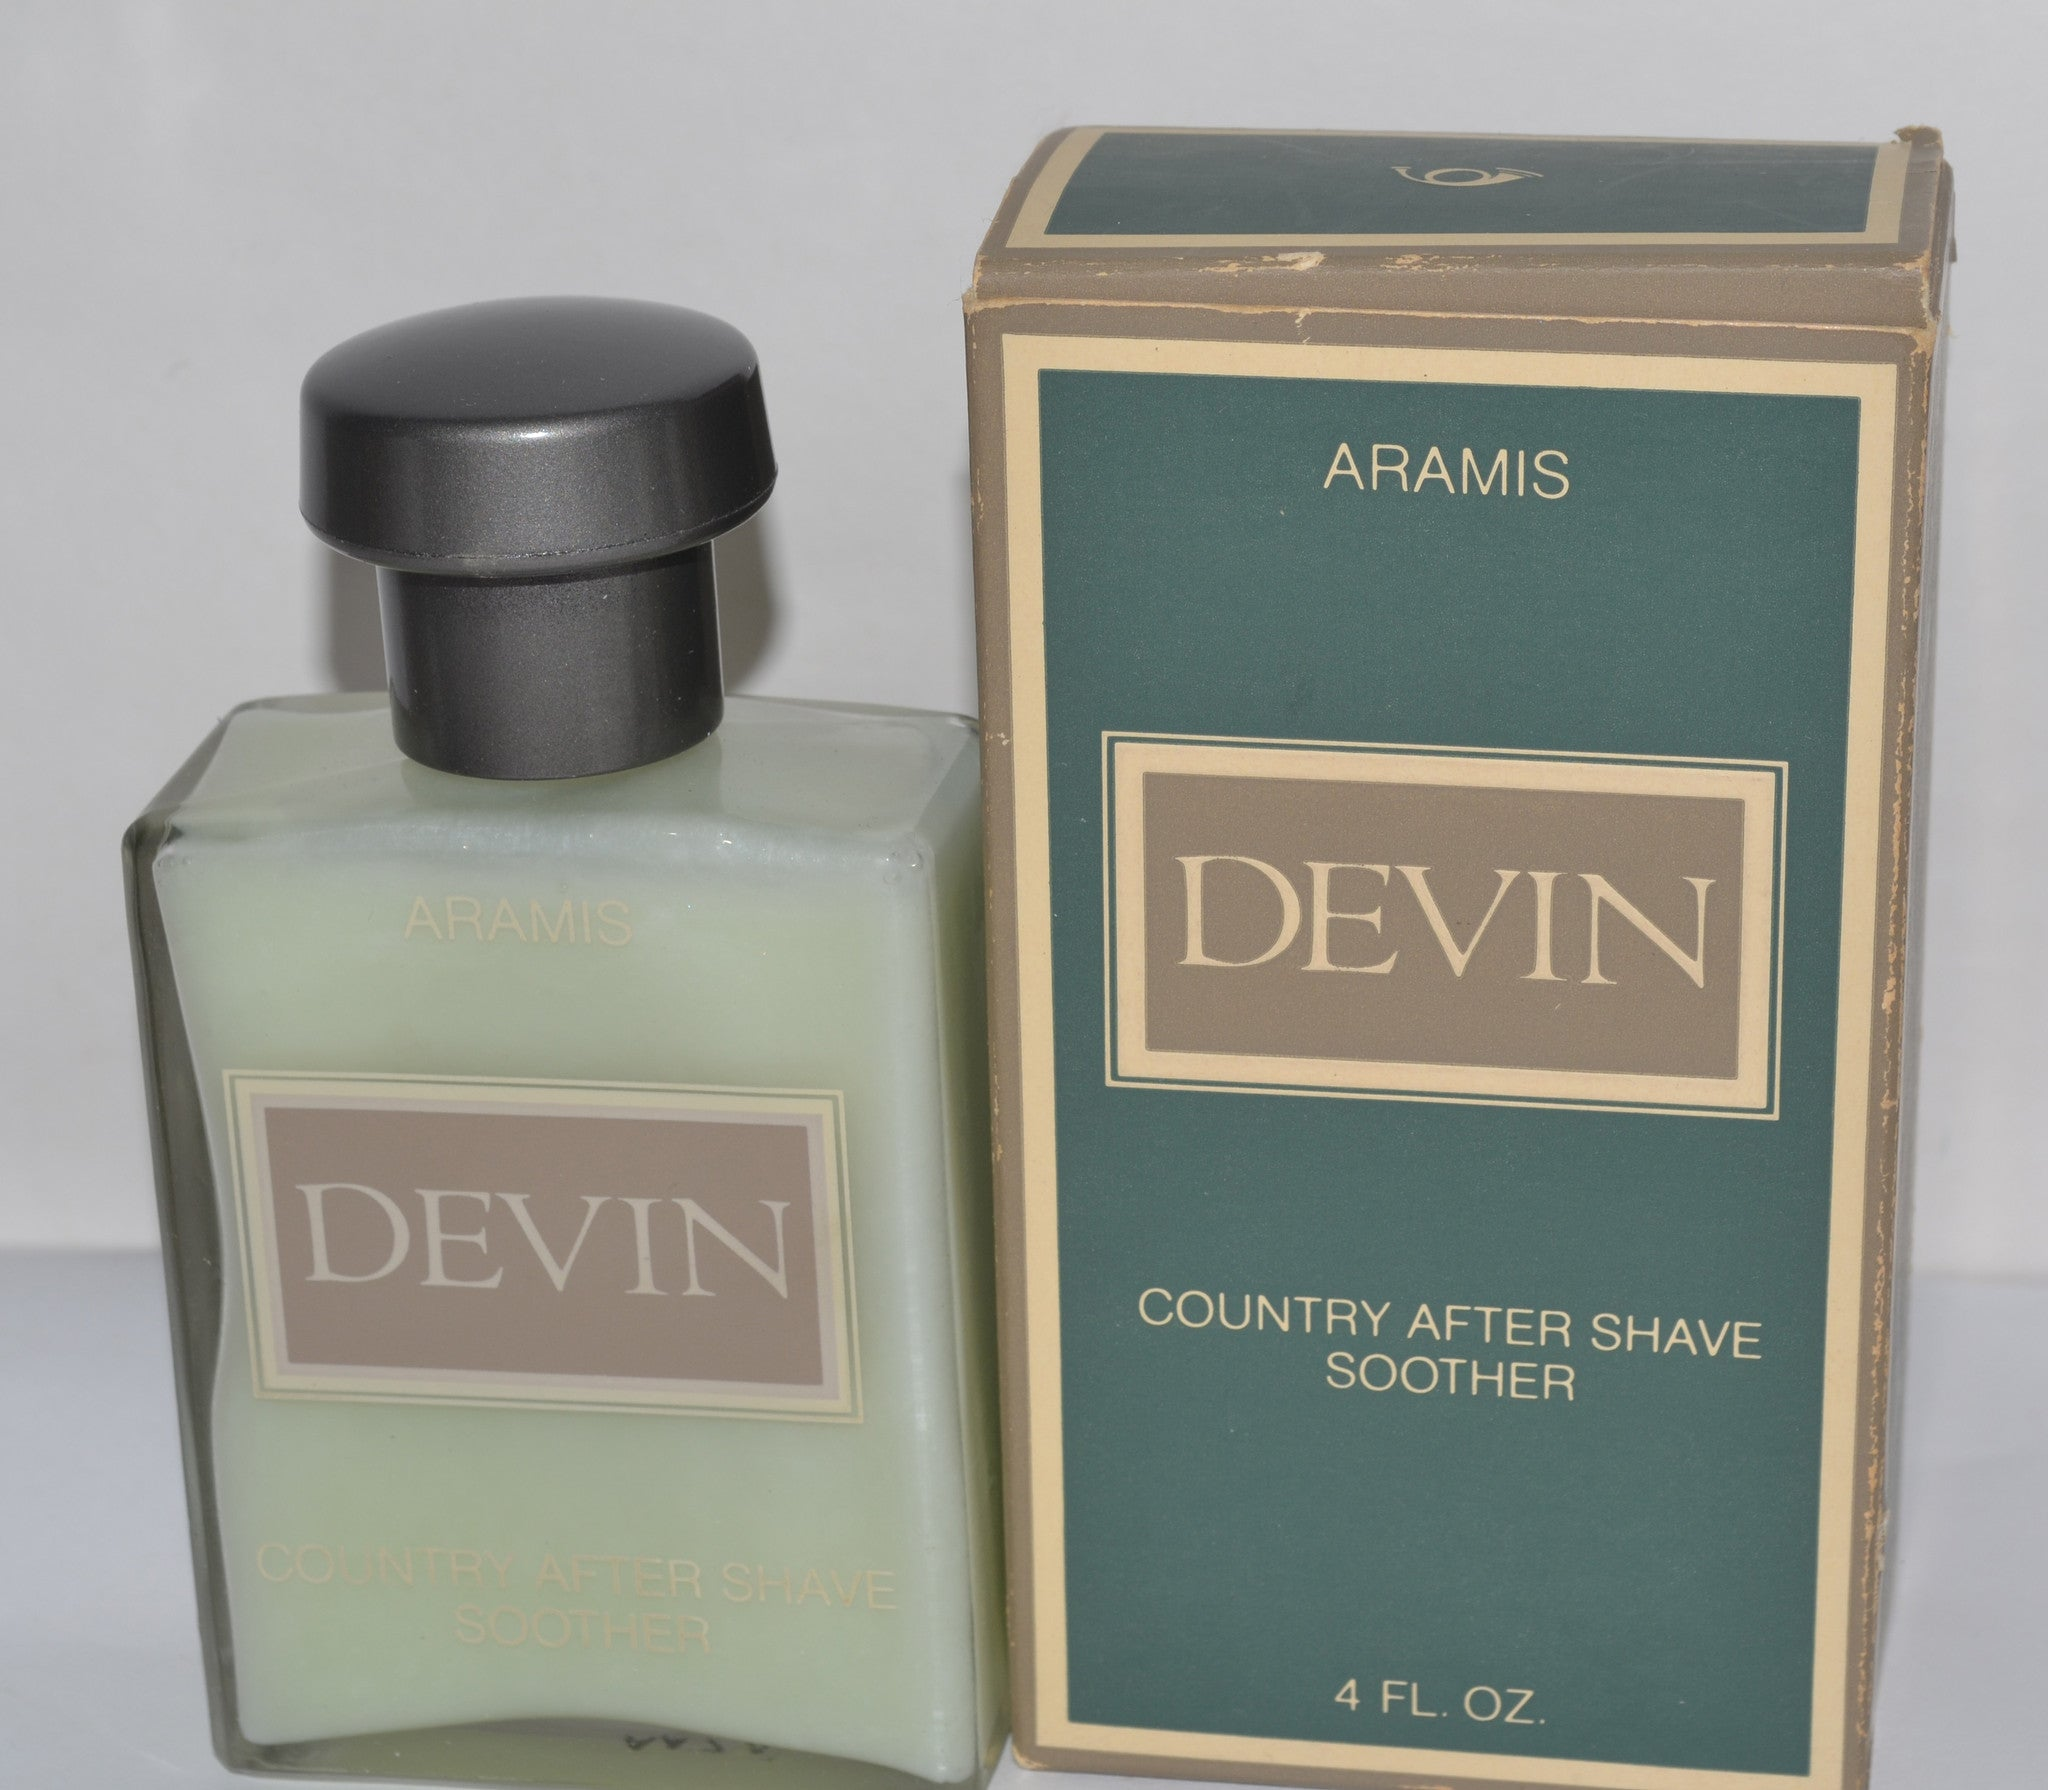 Aramis Devin Country After Shave Soother